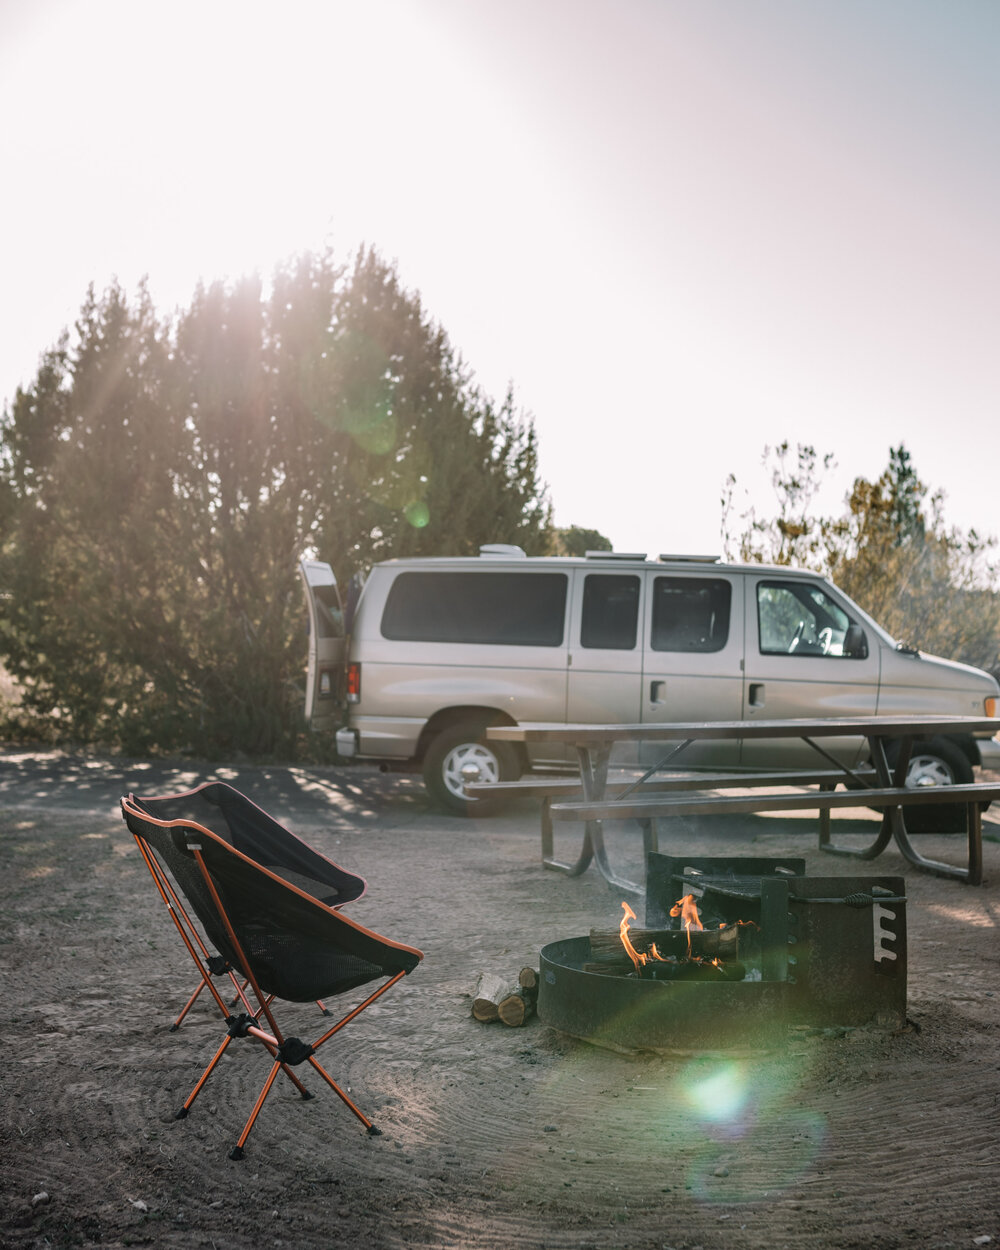 Rachel Off Duty: Camping at Dead Horse State Park in Verde Valley, Arizona